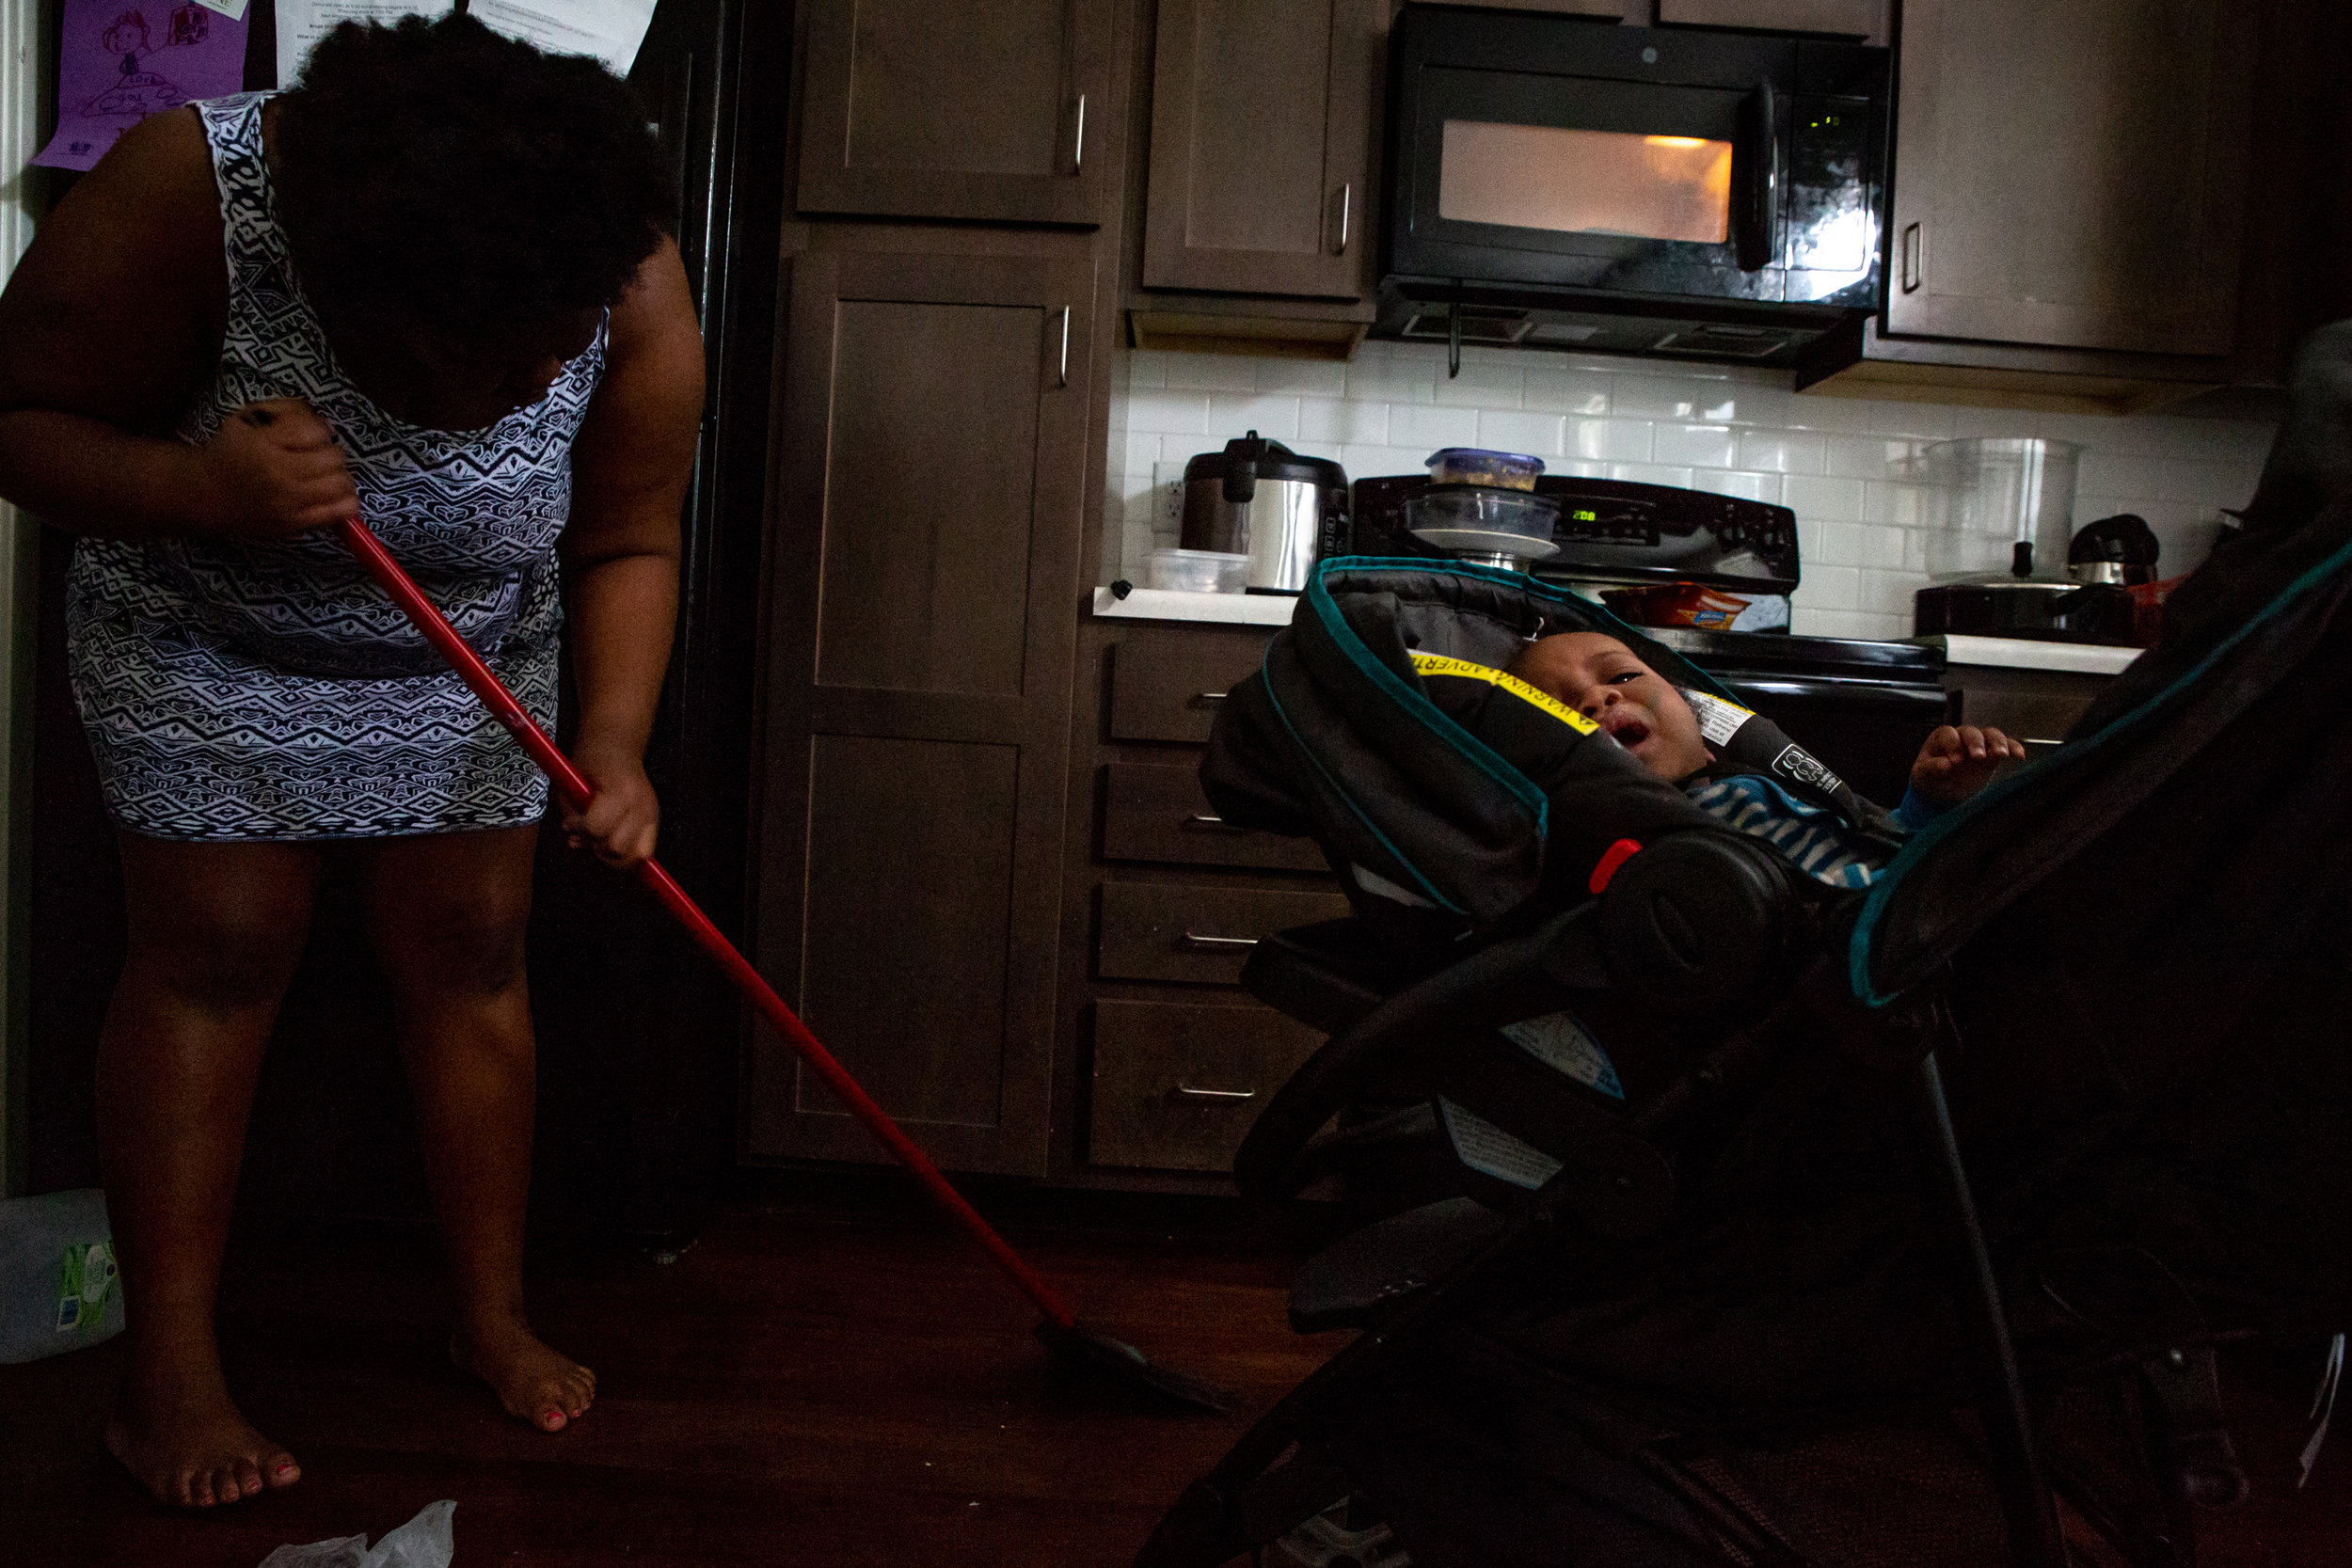 """Mikelah sweeps the kitchen floor next to her son, Isaiah, on Saturday, Oct. 20, 2018. """"I'm like the second mom in here,"""" she said of her responsibilities around the house and taking care of her siblings. Mikelah's stepfather works nights and sleeps during the day, when her mother works as a city bus driver."""